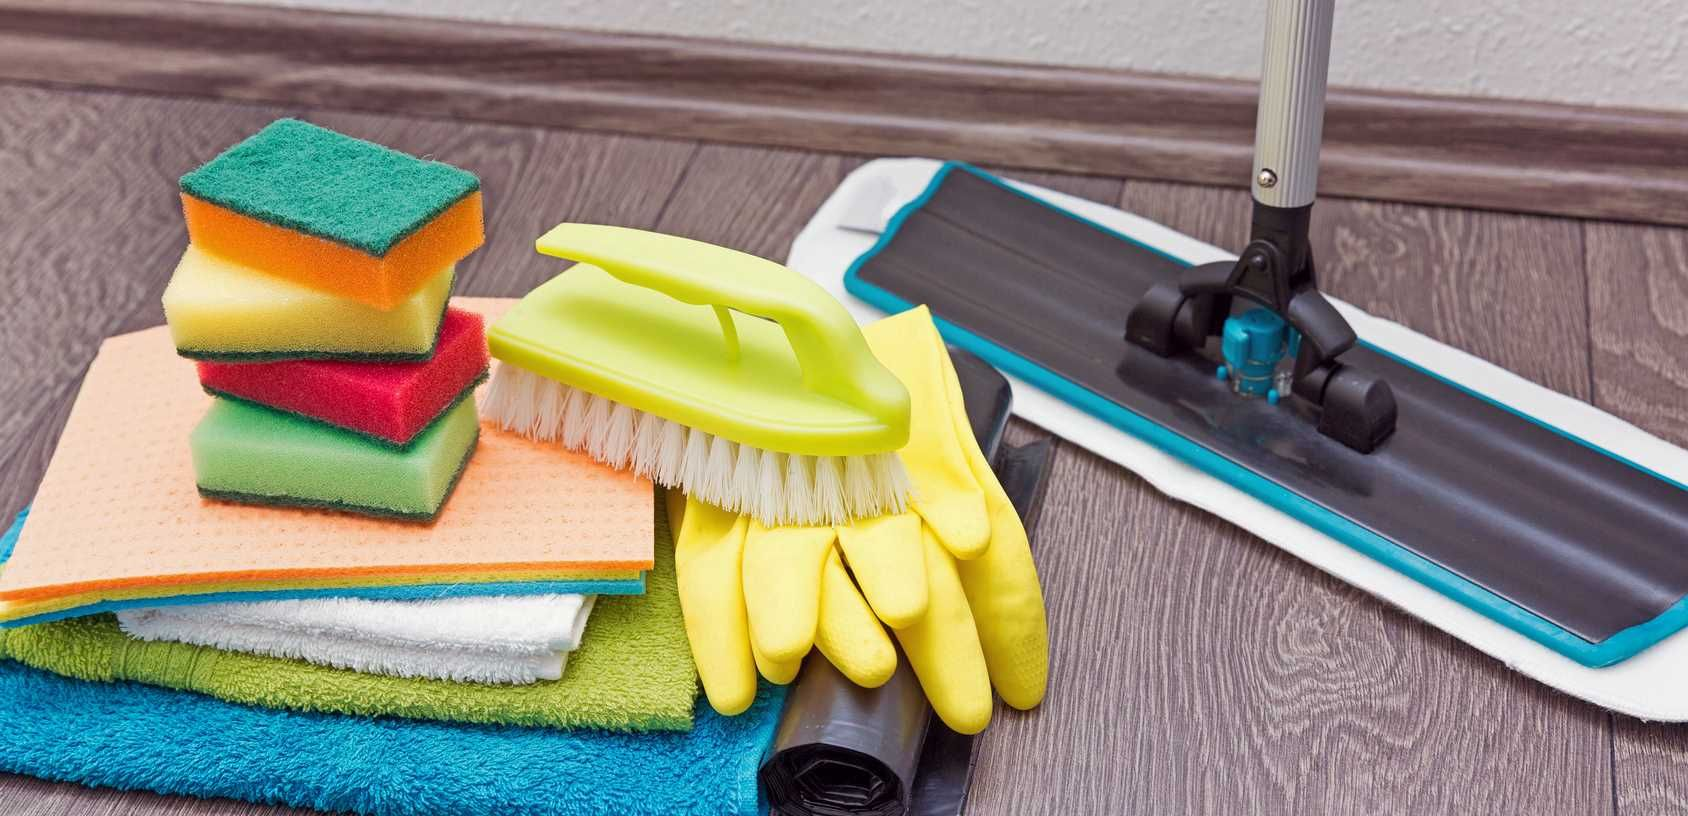 Cleaning Laminate Floors Floor Cleaning Services in